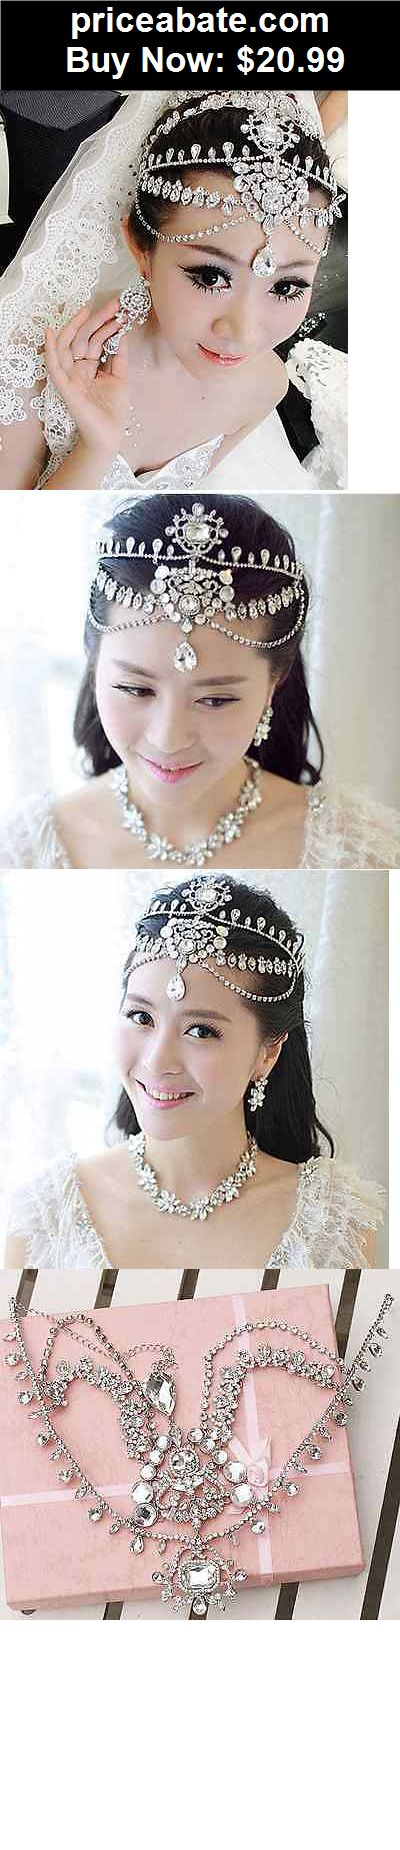 Bridal-Accessories: Bridal Wedding Chain Rhinestone Crystal Hair Tiara Dangle Crown Headpiece -CA - BUY IT NOW ONLY $20.99